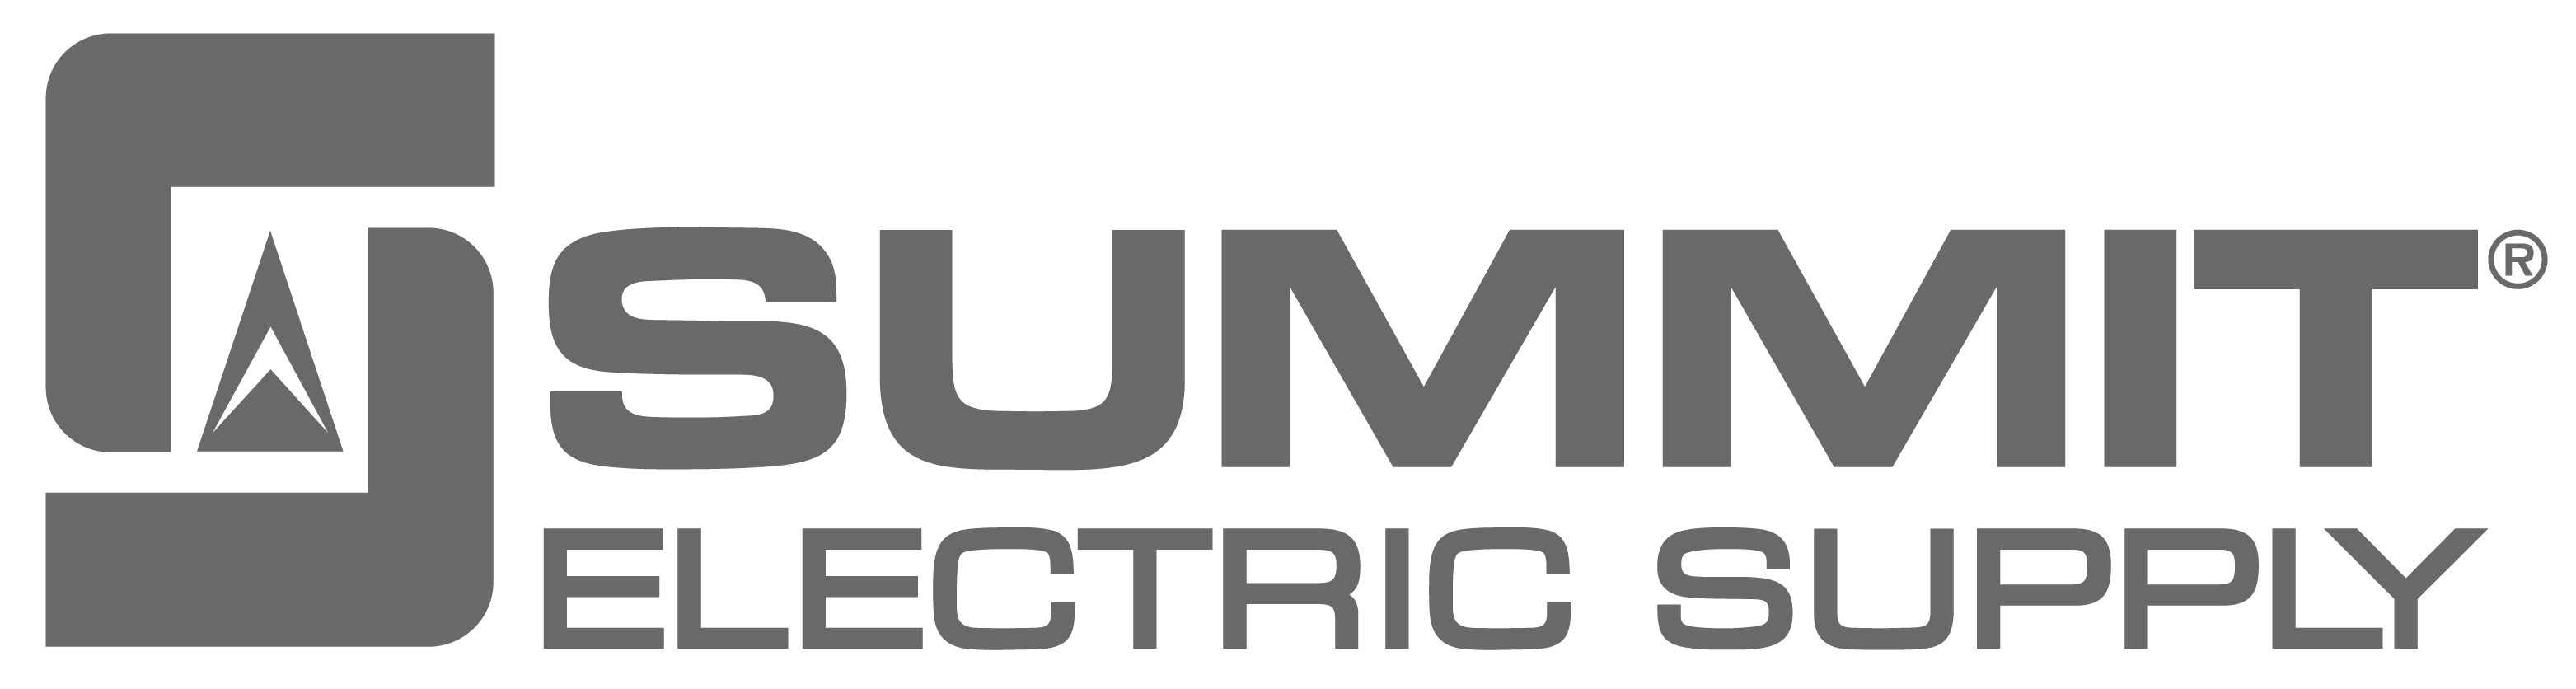 Summit Electric Supply is a DISCCORP client